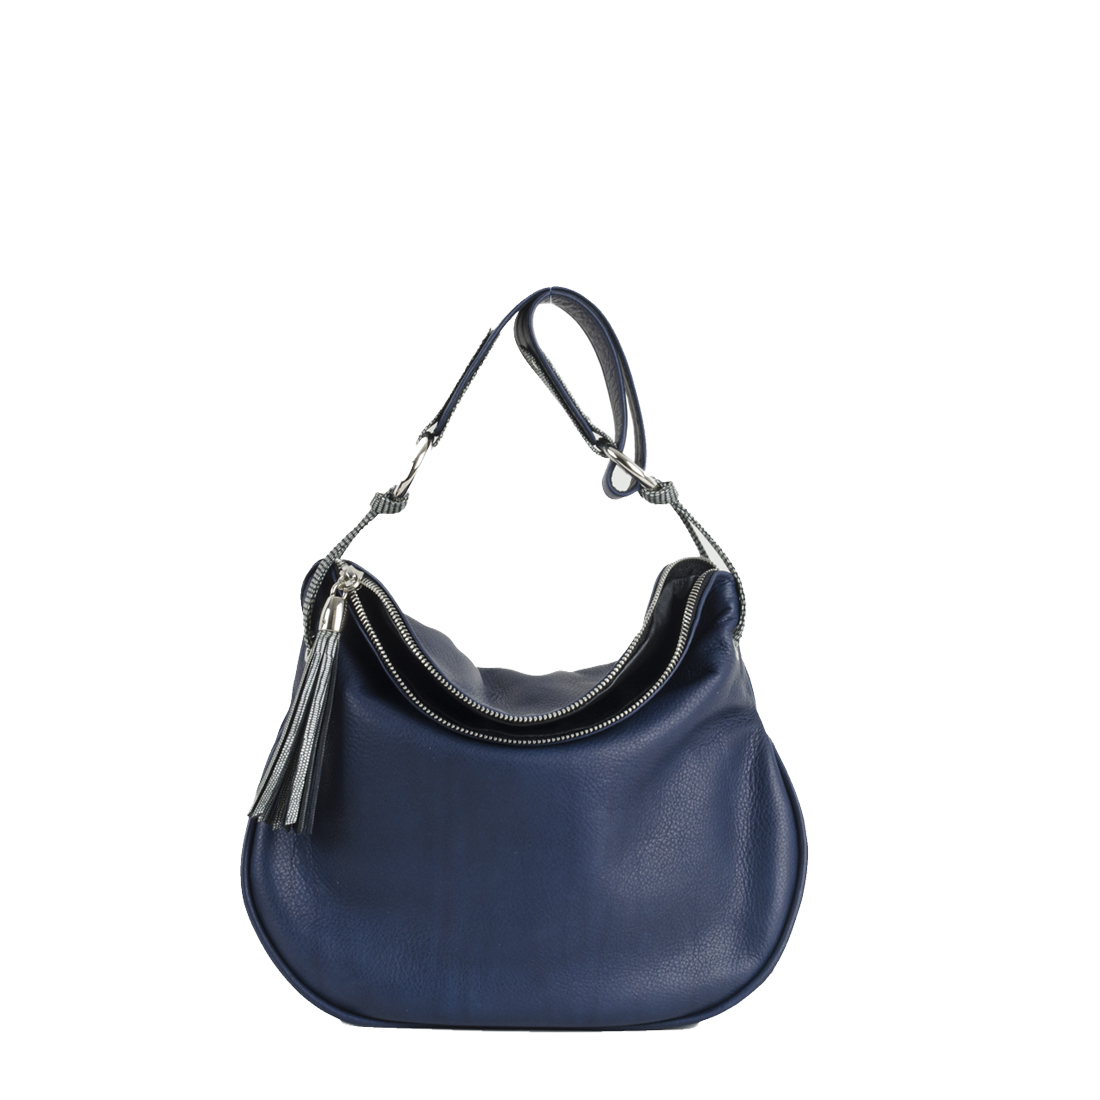 Milly Navy Leather Shoulder Bag